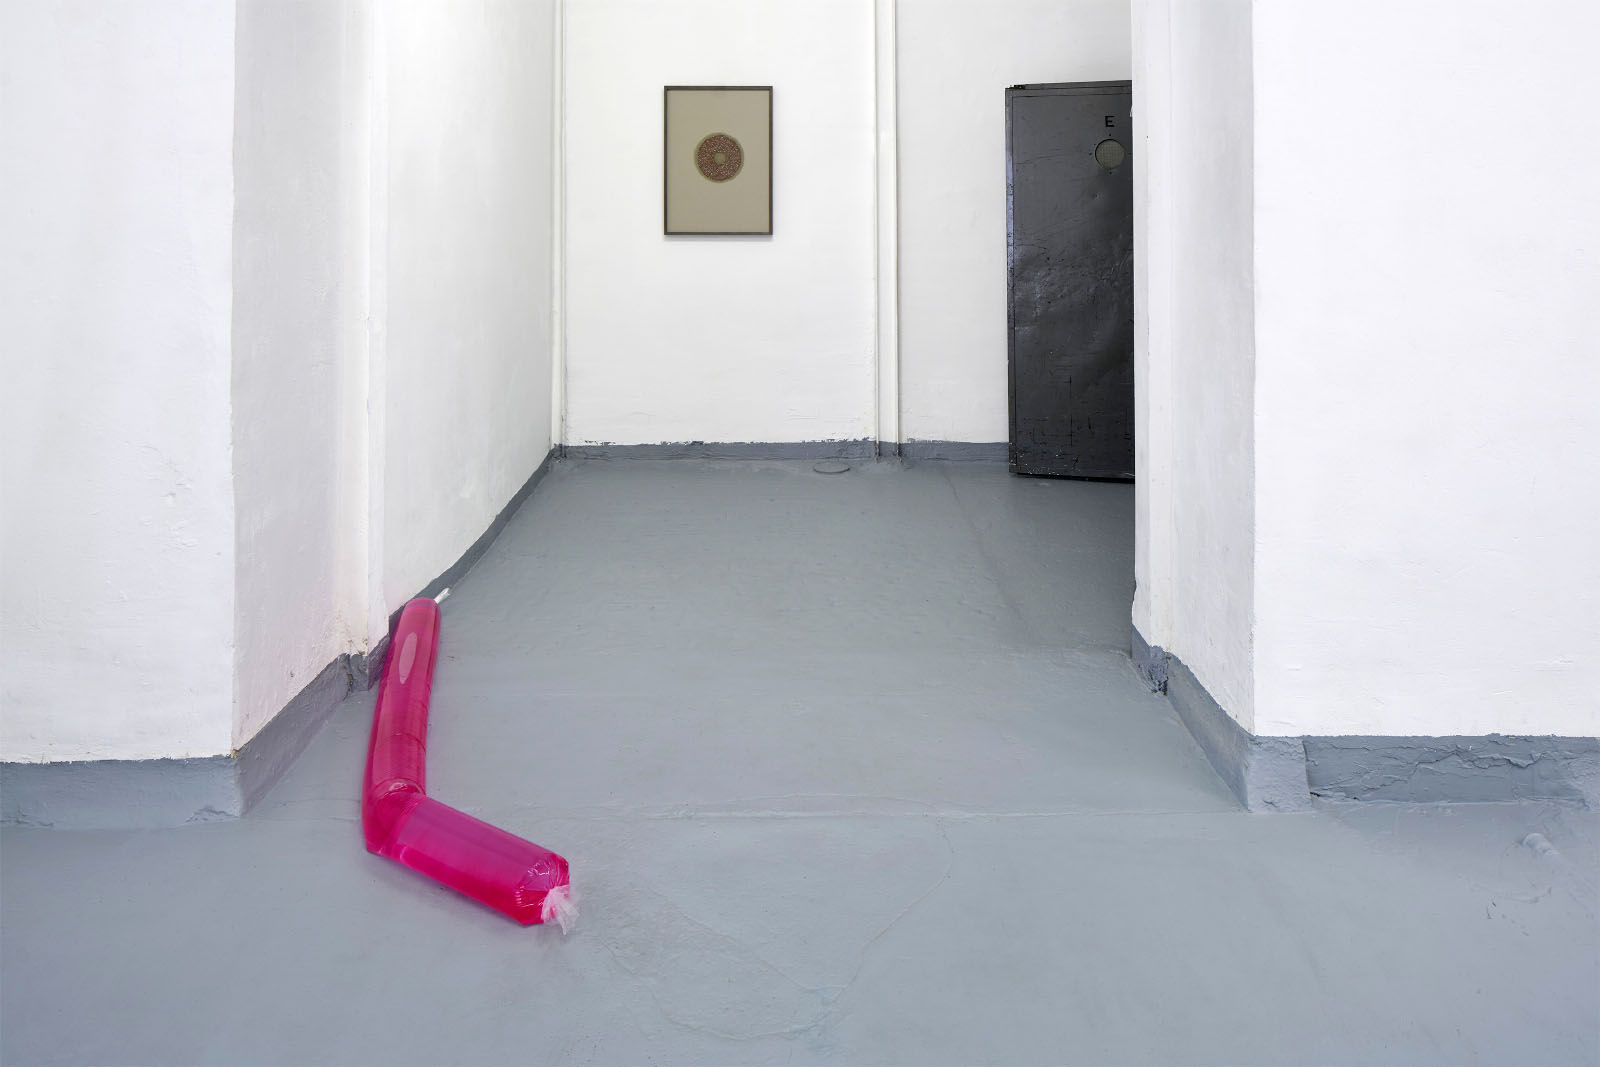 "<a href=""http://kubaparis.com/in-sweet-succession-material-matters-kuratiert-von-muriel-meyer-und-marina-ru%CC%88diger/"" target=""_blank"">Installationsfotos der Ausstellung ""In Sweet Succession: Material matters"" im Basis e. V. Projektraum in Frankfurt am Main</a>"